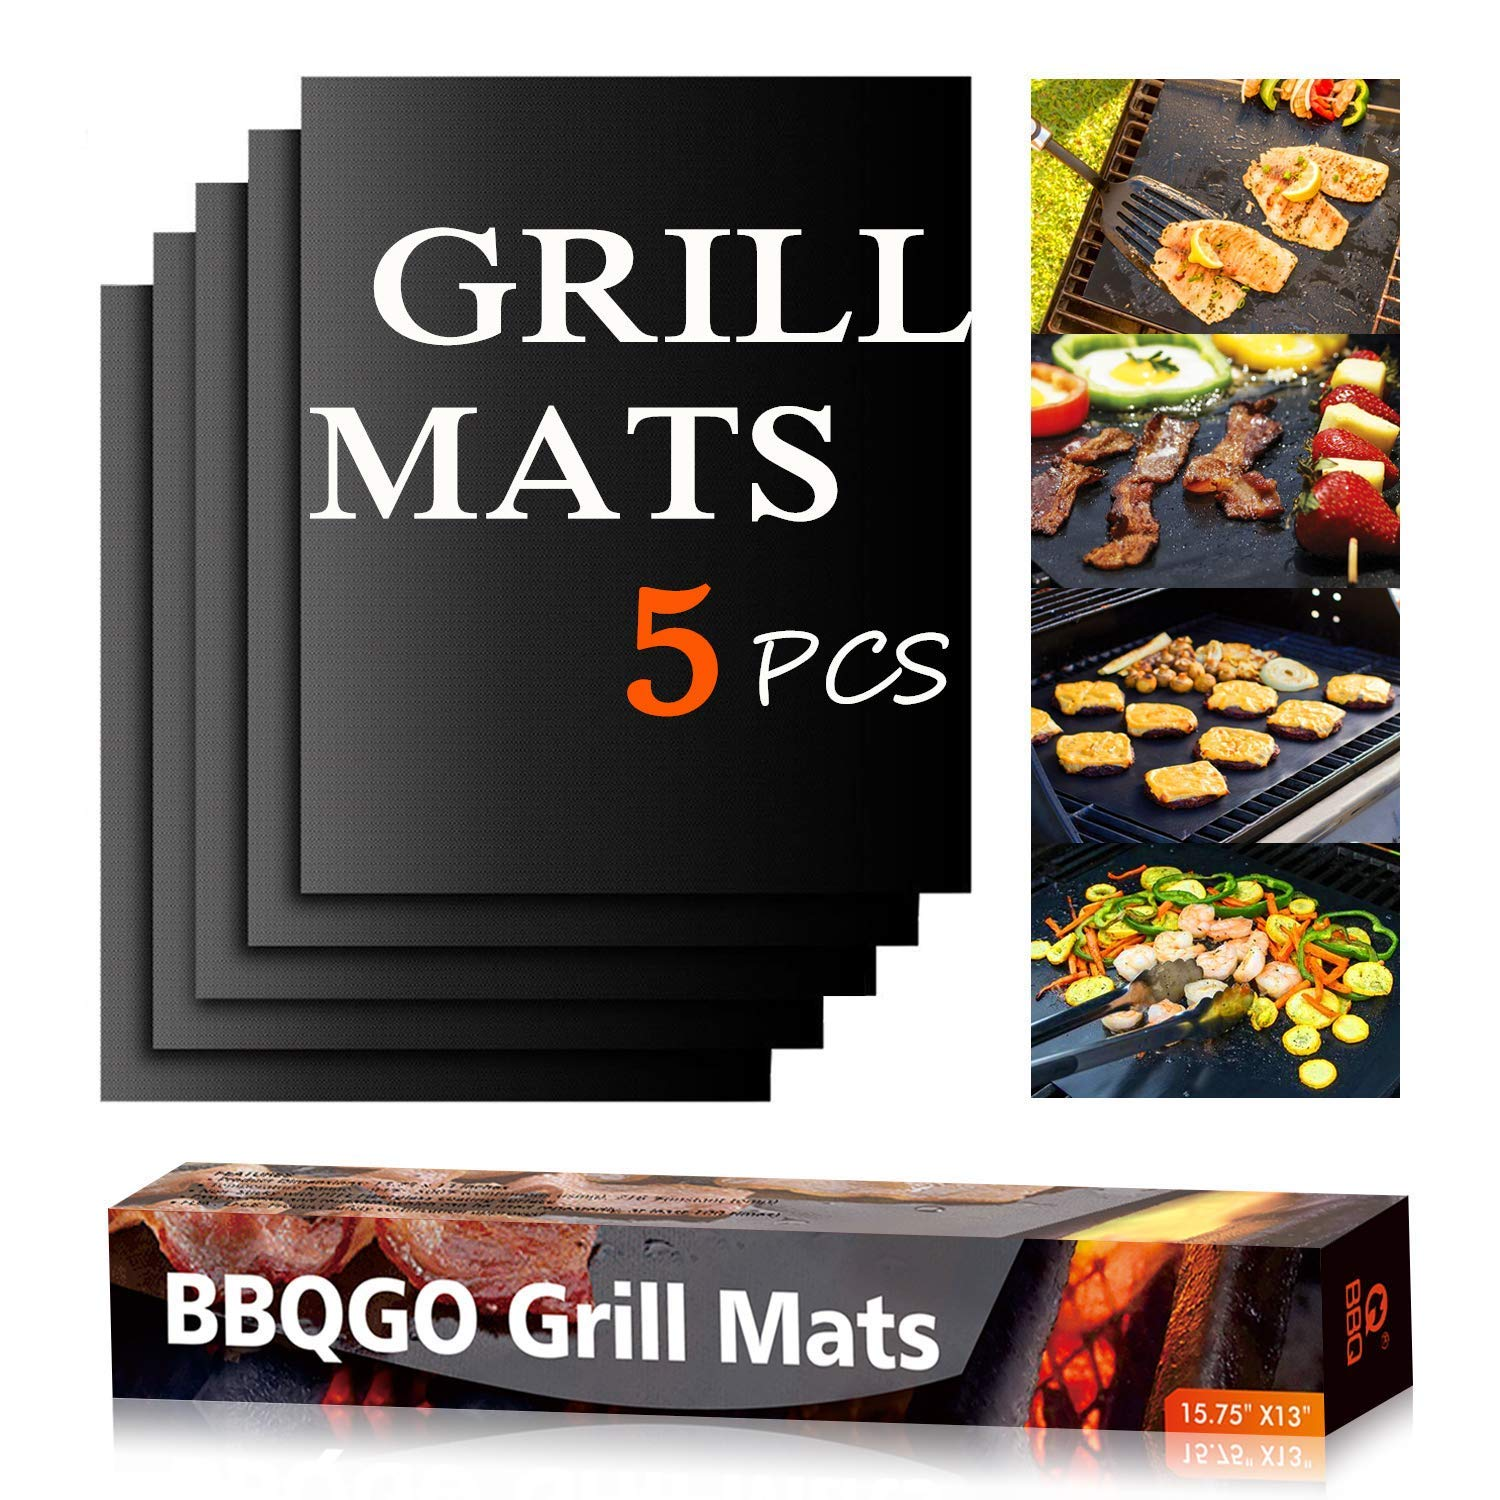 BBQGO Grill Mat, Non Stick Barbecue Mat with PTFE Surface, Easy to Clean, Reusable, High Temperature Resistant Teflon Cooking Mat for Gas, Charcoal, Electric Grill, 15.75x13 Inch, Set of 5 by BBQGO